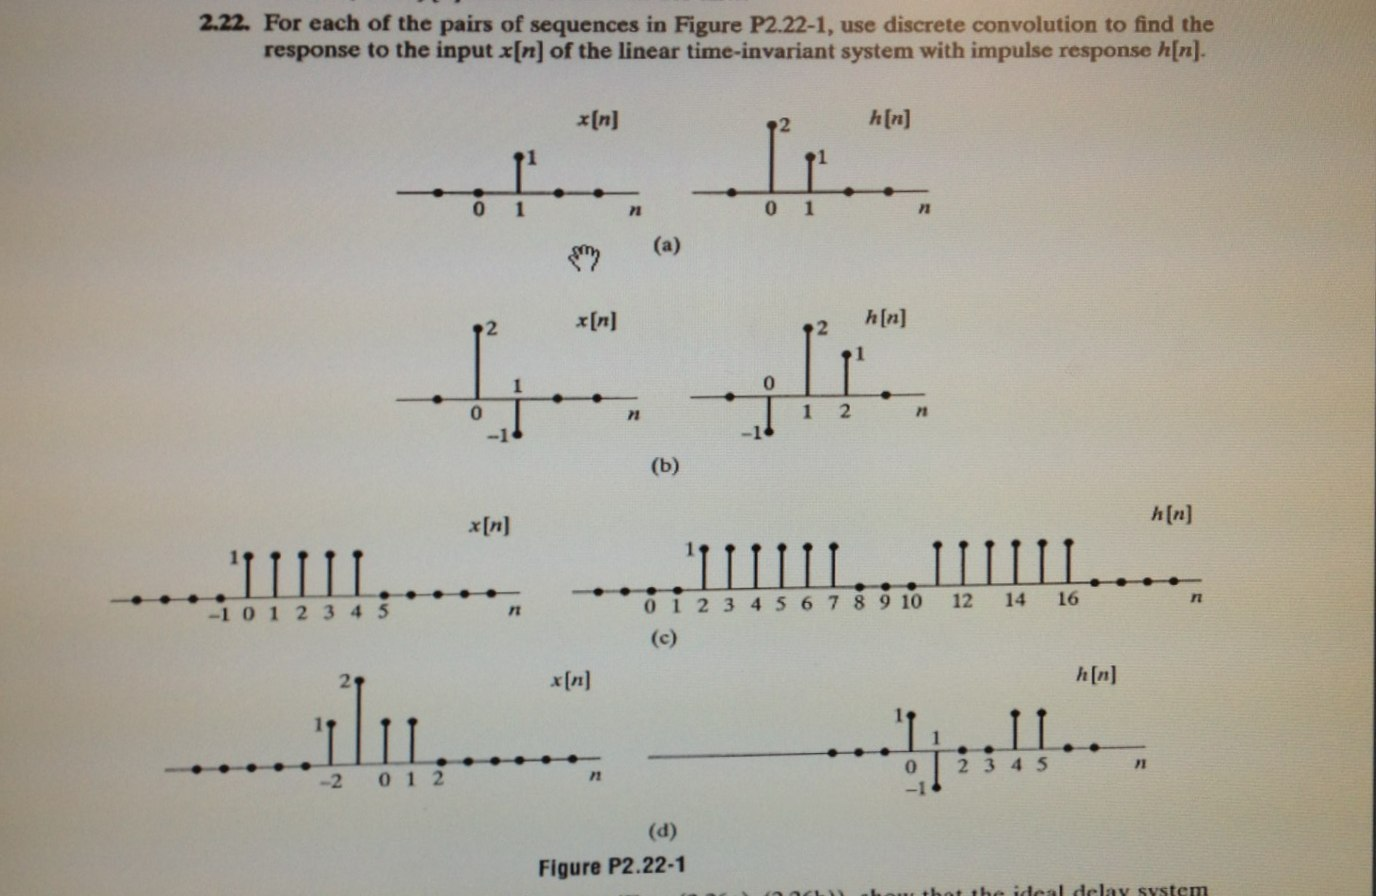 For each of the pair* of sequences in Figure P2.22